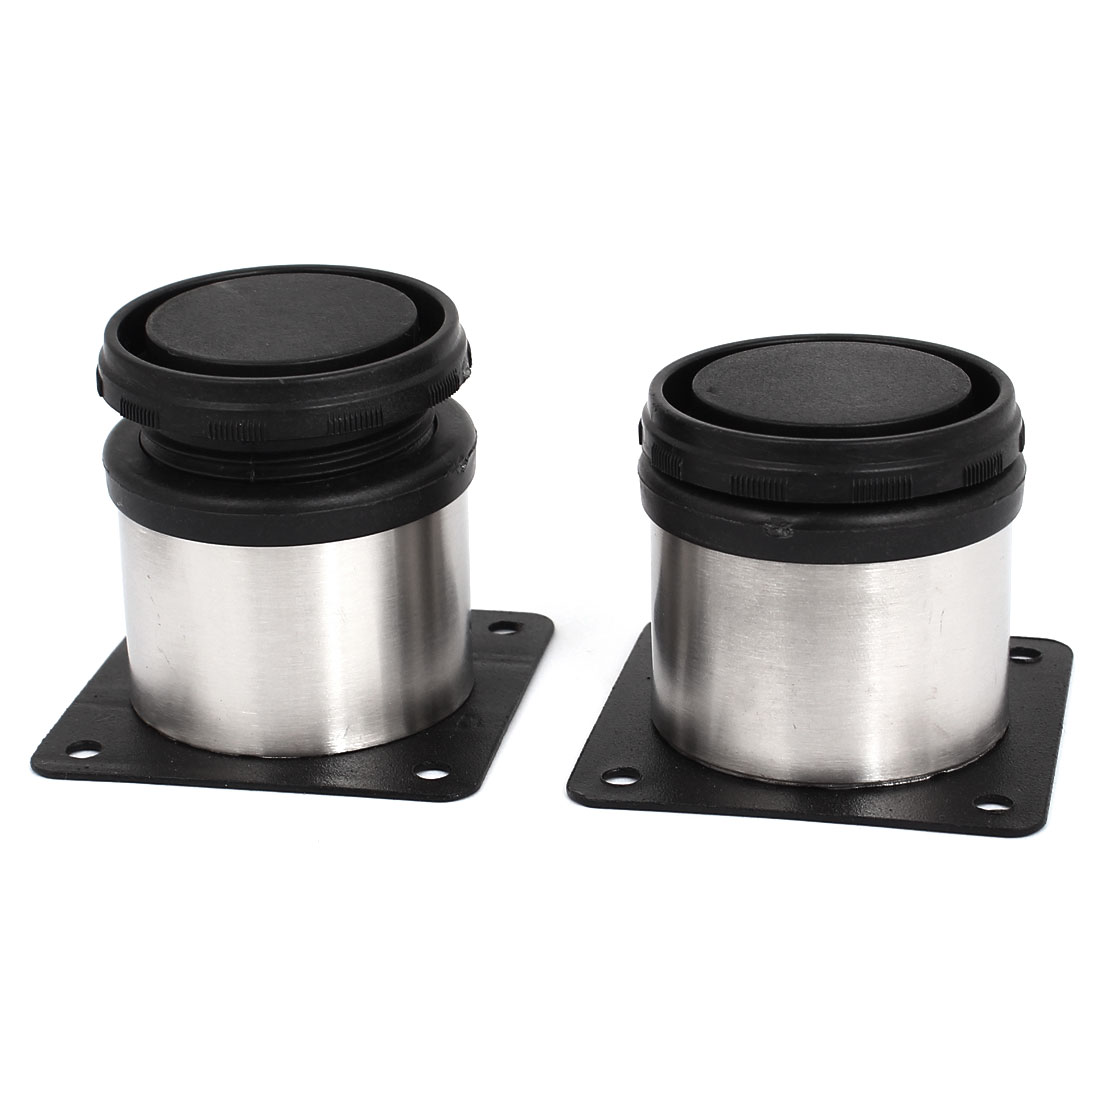 2pcs 50mm x 50mm Adjustable Plinth Leg Feet for Kitchen Cabinet Furniture Sofa